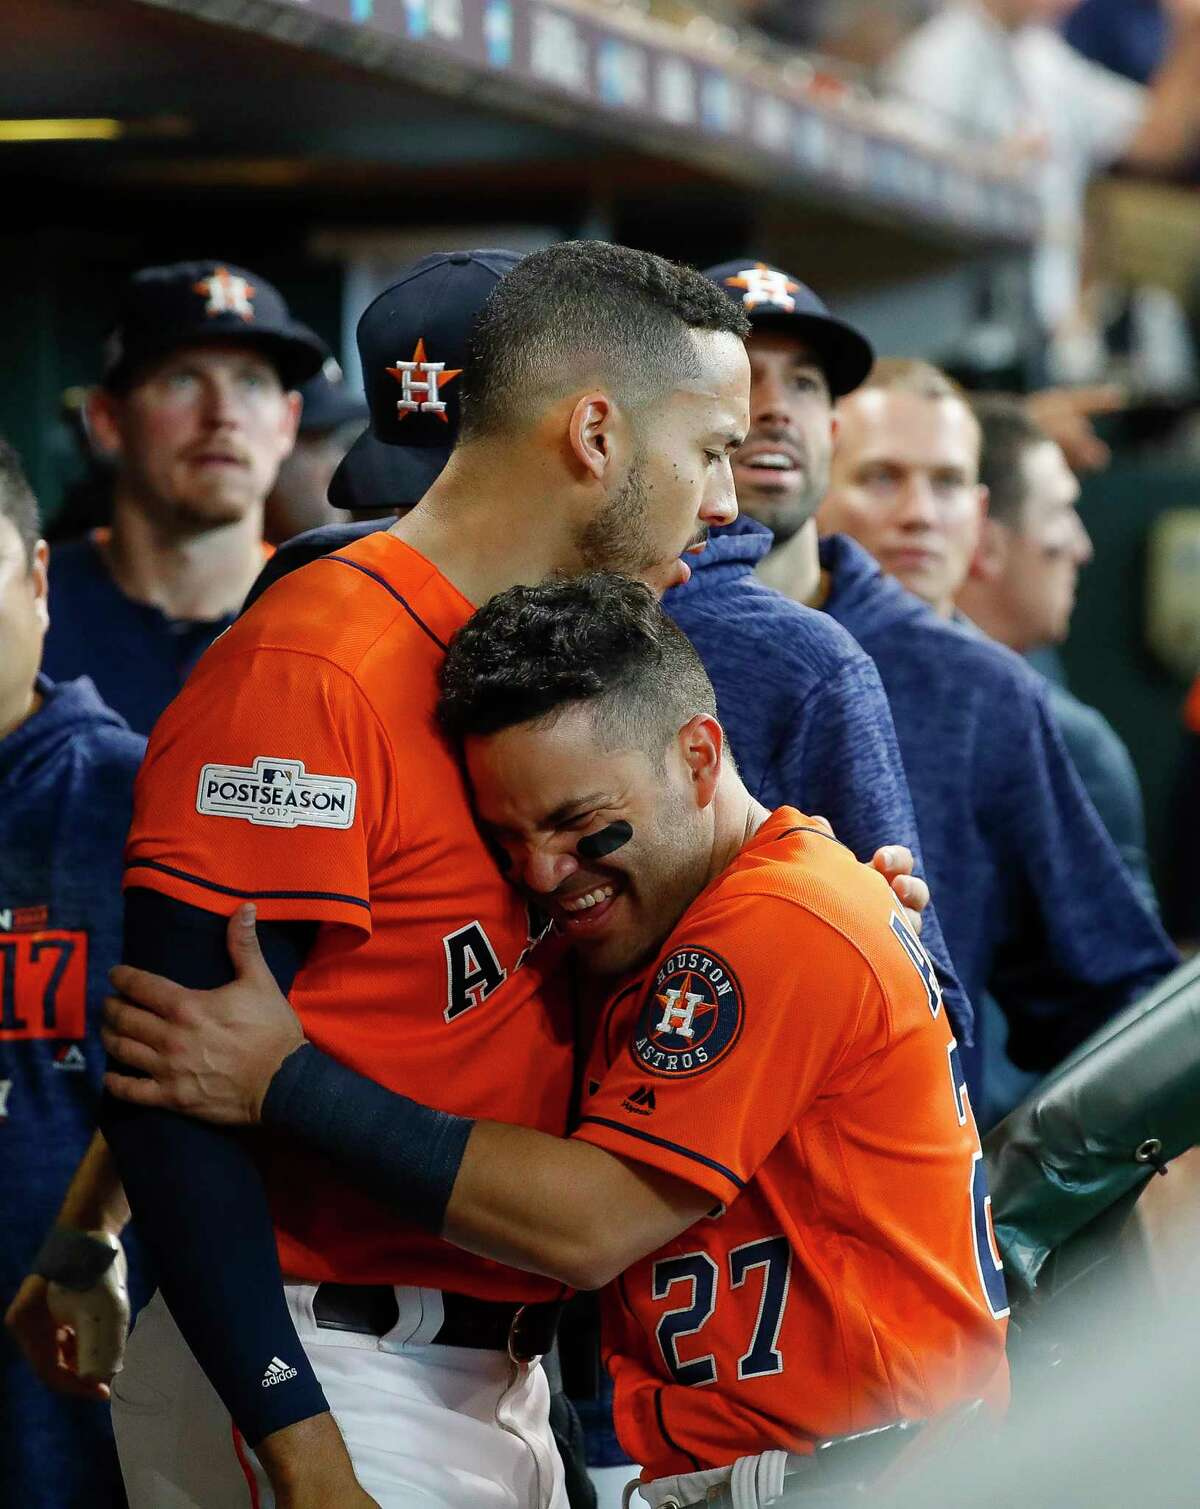 Houston Astros shortstop Carlos Correa (1) celebrates with second baseman Jose Altuve (27) after coming home on an Evan Gattis RBI single during the sixth inning of Game 2 of the ALDS at Minute Maid Park on Friday, Oct. 6, 2017, in Houston. Correa drove in two runs with a double before being driven in himself.